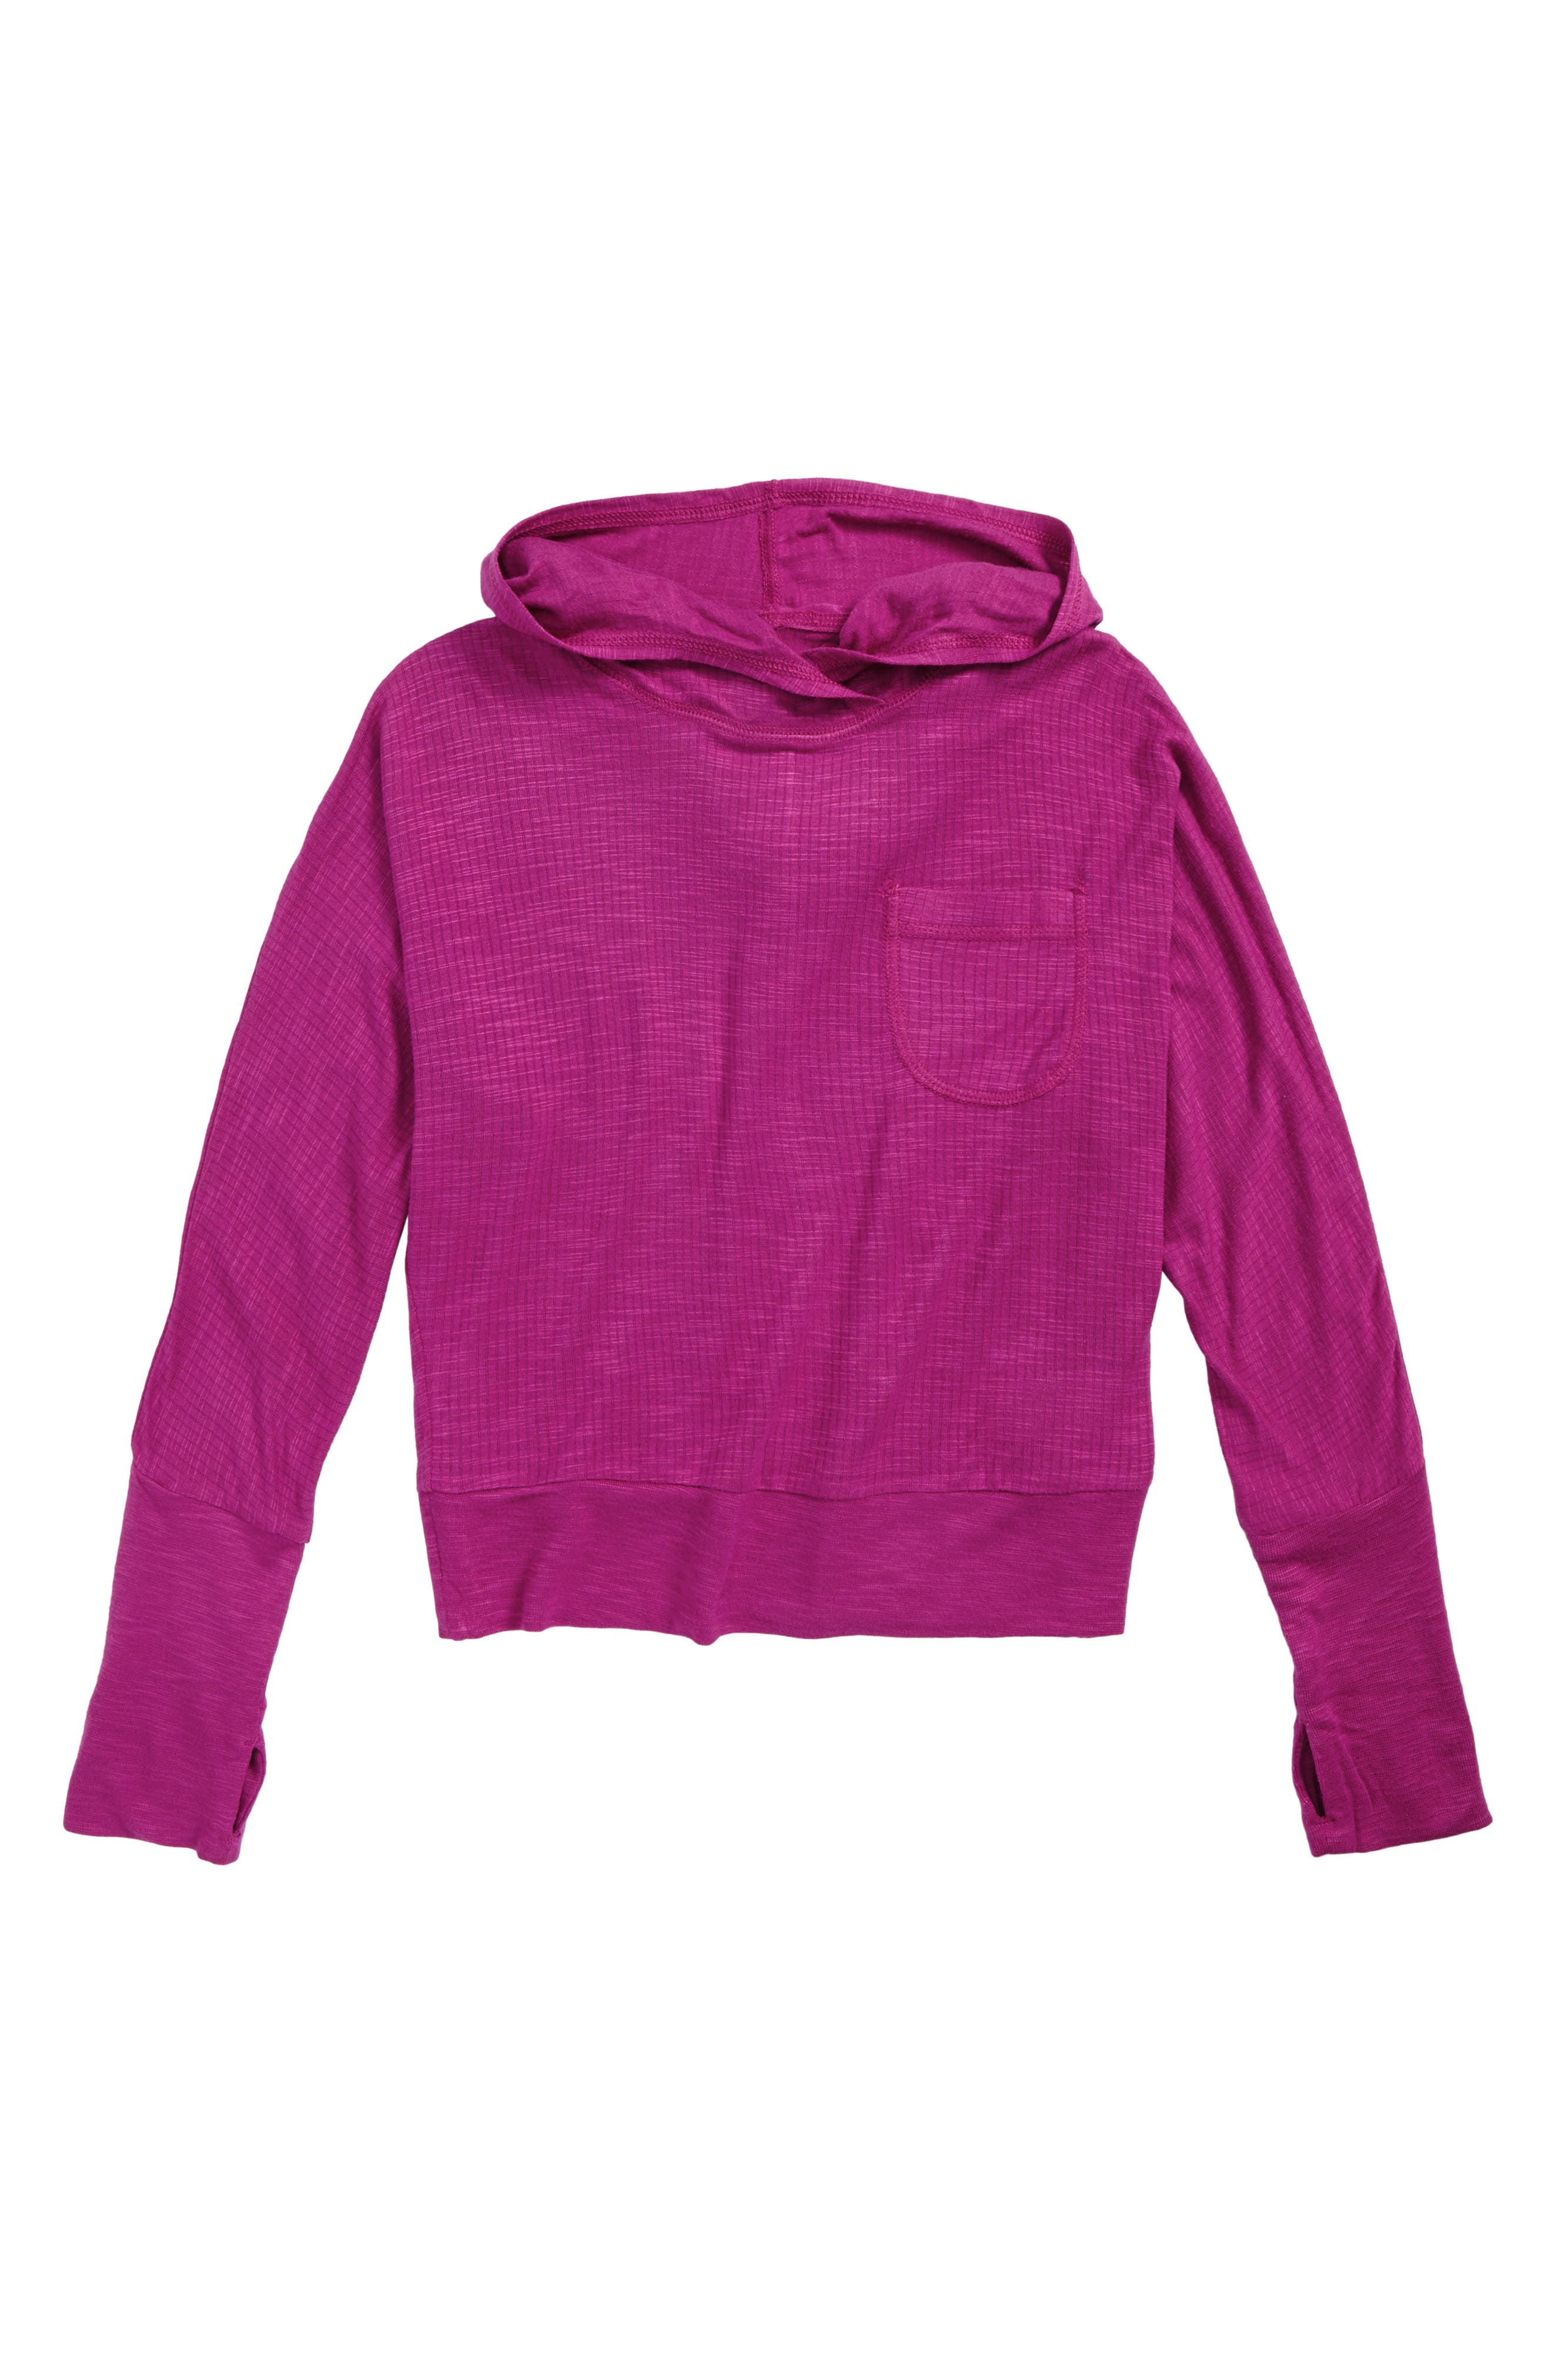 Dolman Hooded Tee,                             Main thumbnail 1, color,                             Pink Wild Aster